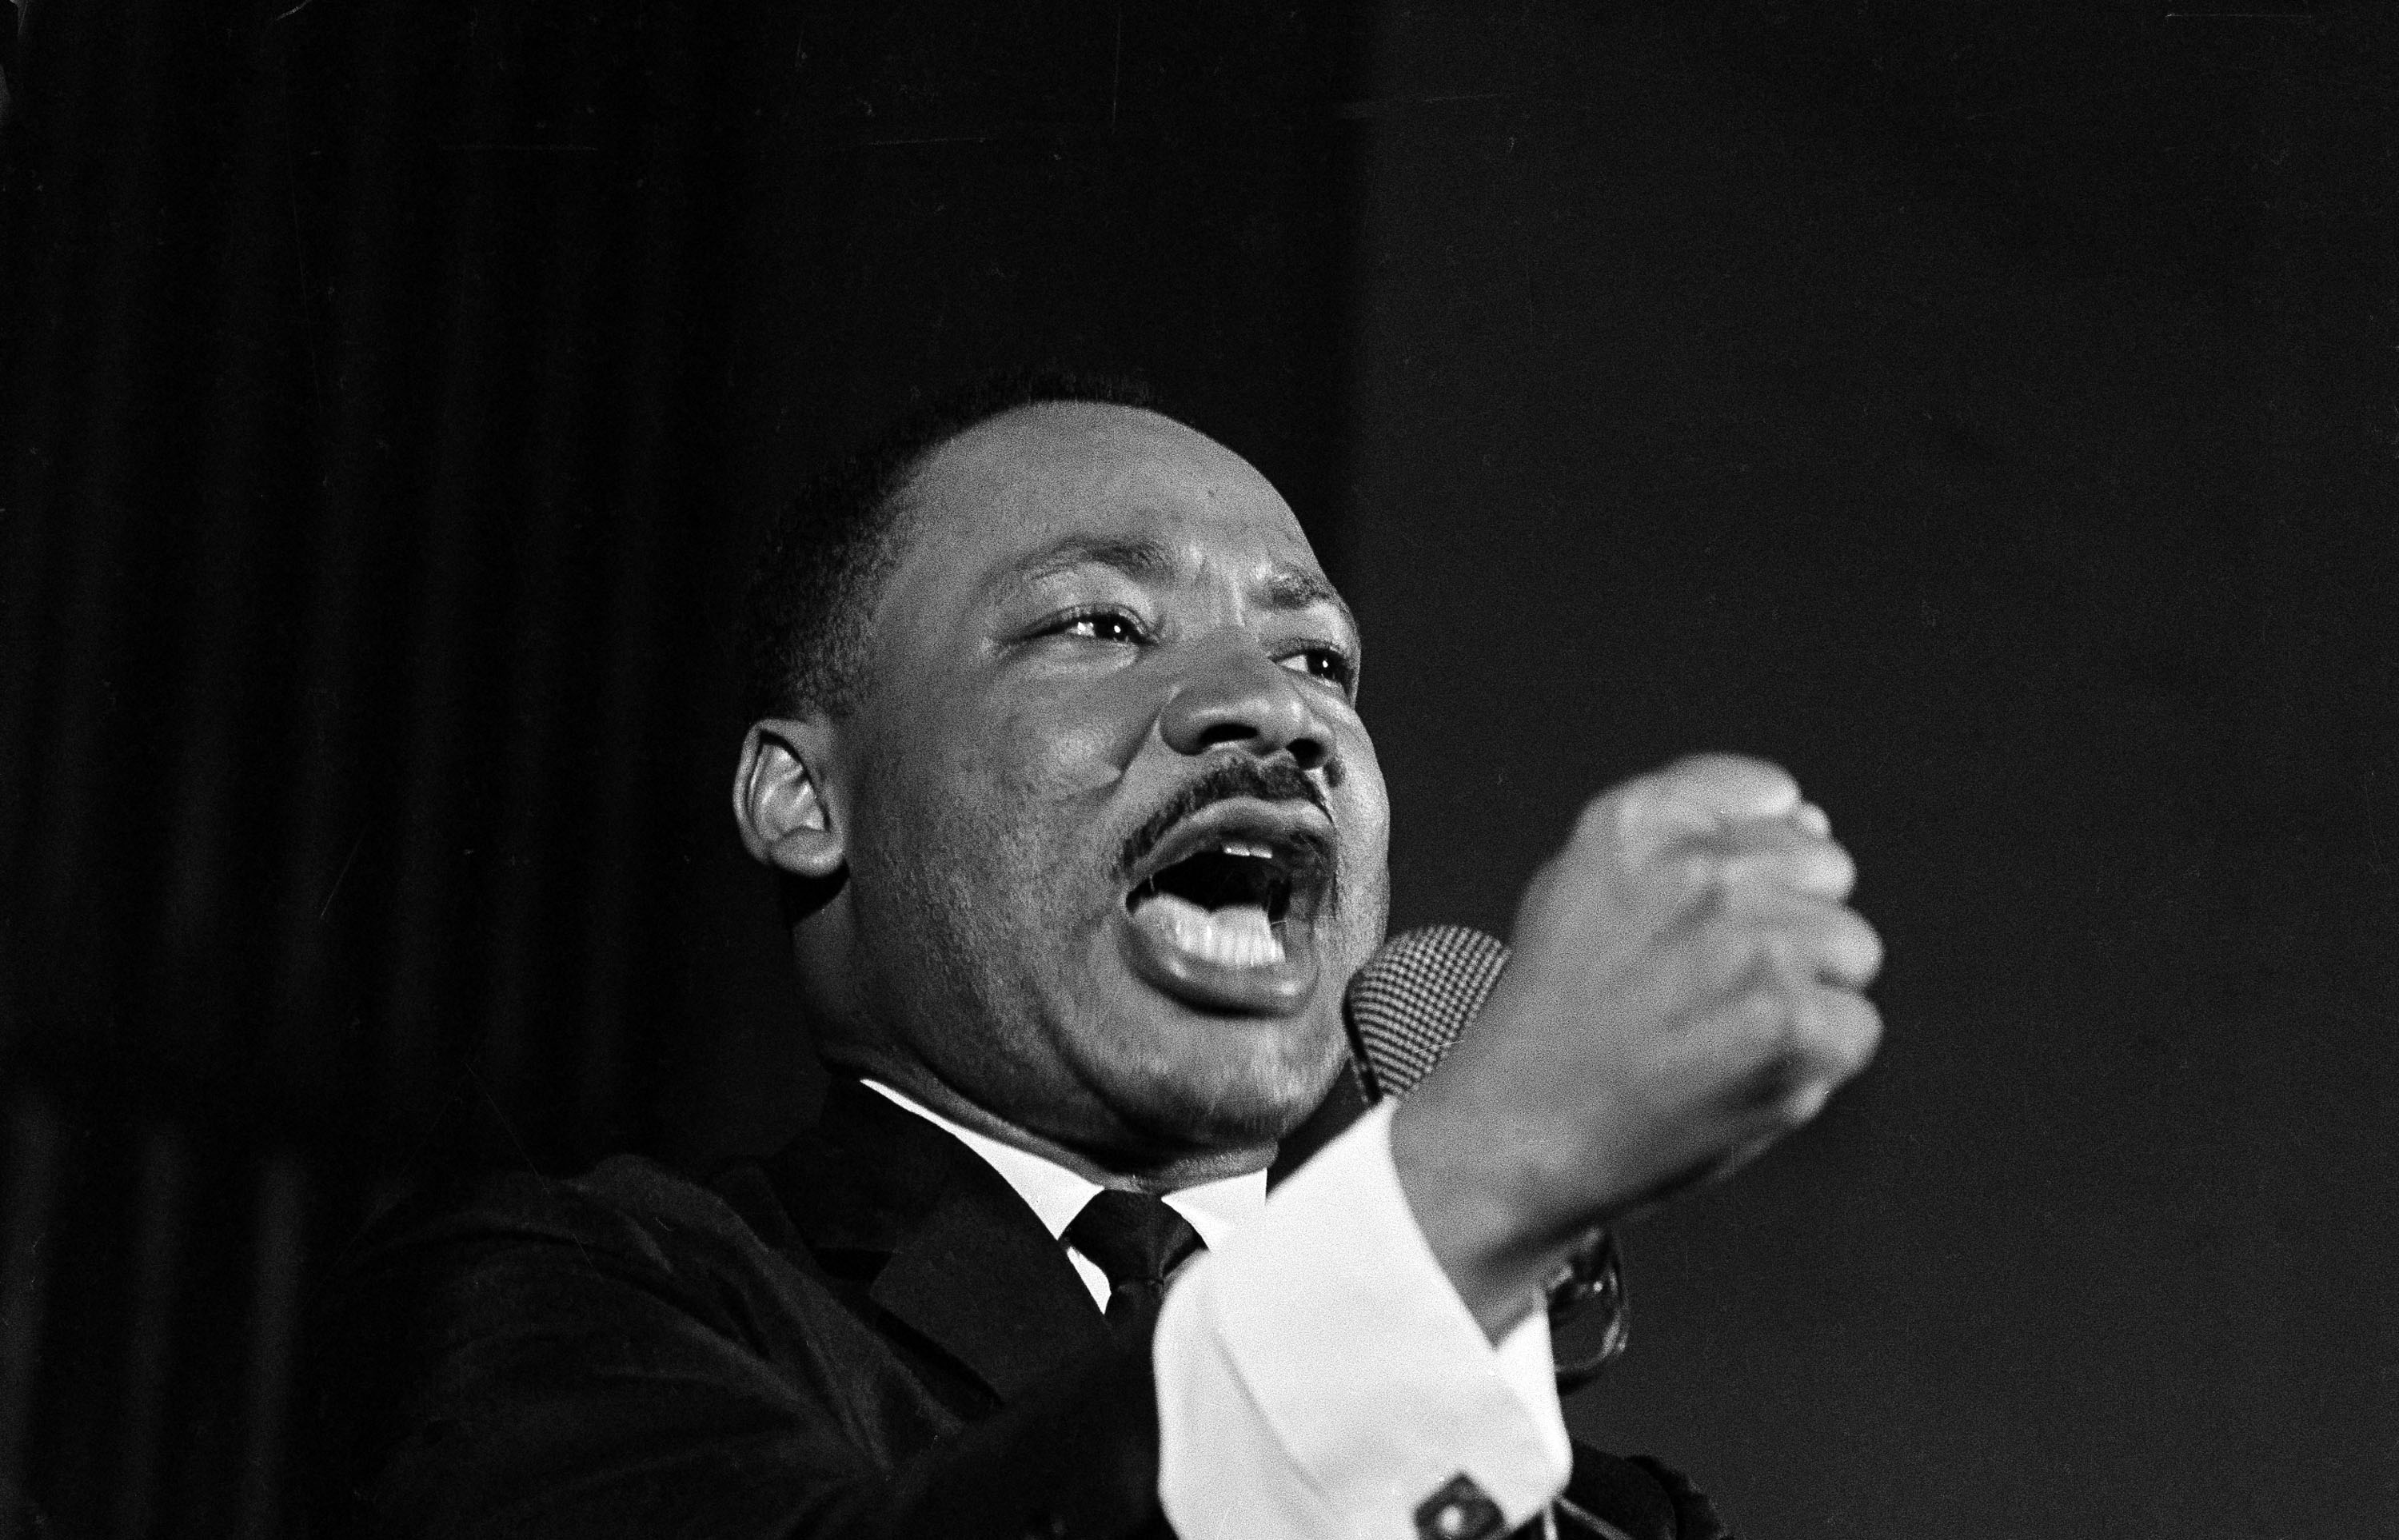 Martin Luther King, Jr. shakes his fist during a speech in Selma, Alabama, Feb. 12, 1965.